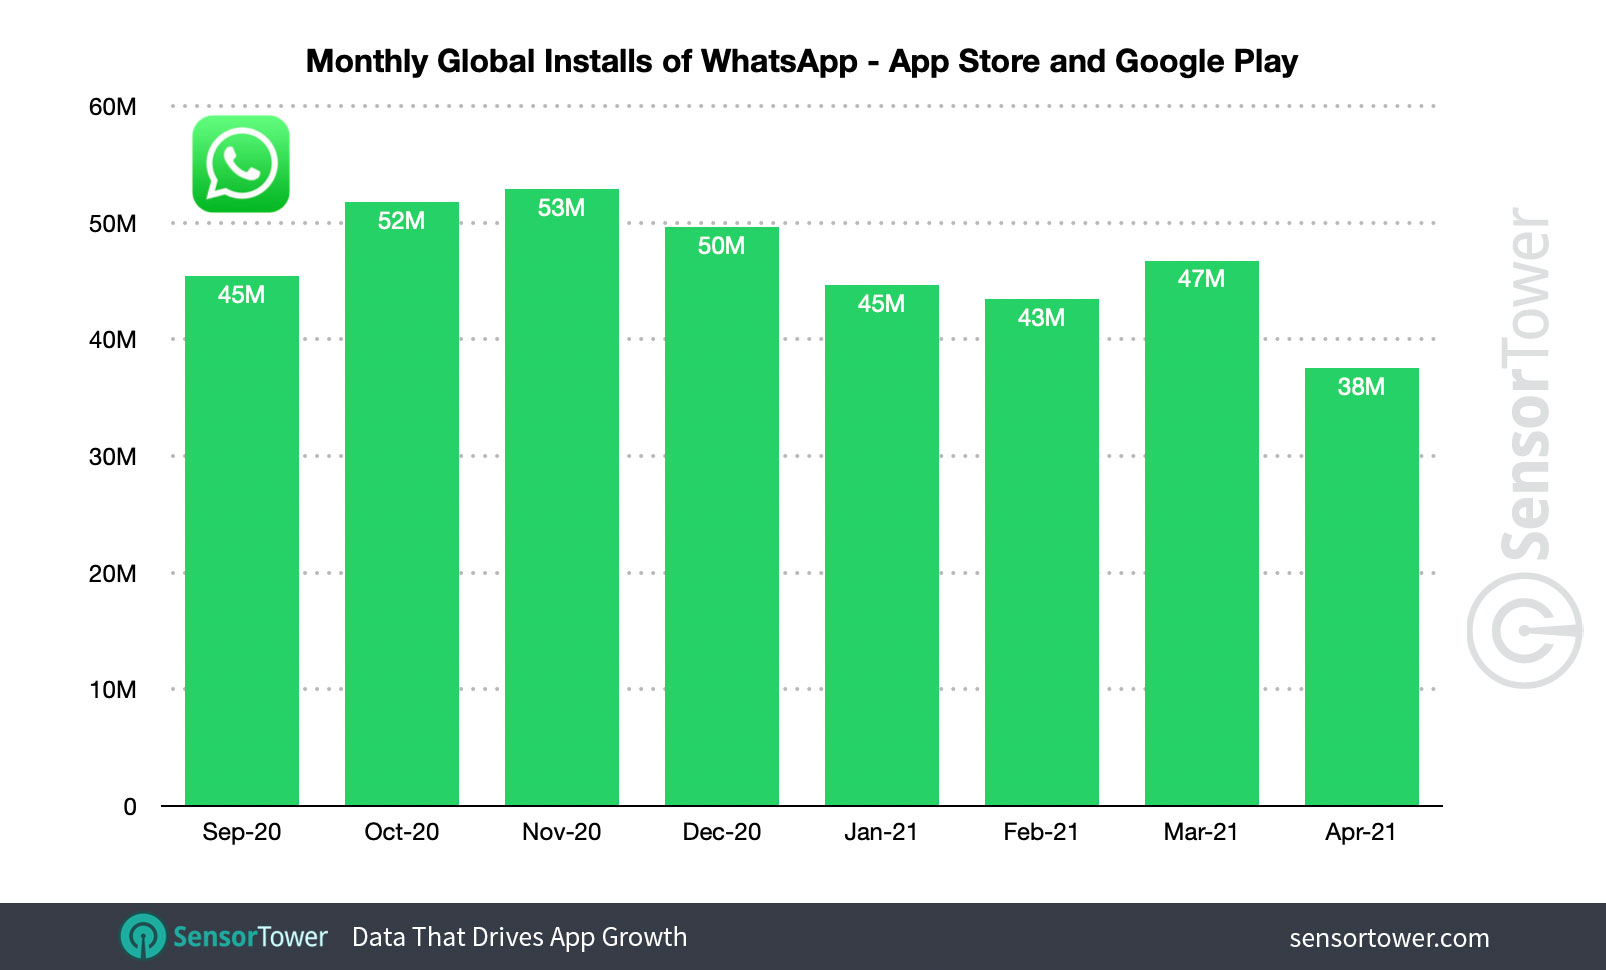 WhatsApp's installs saw a decline during the COVID-19 pandemic, and again after the company announced its new privacy policy.